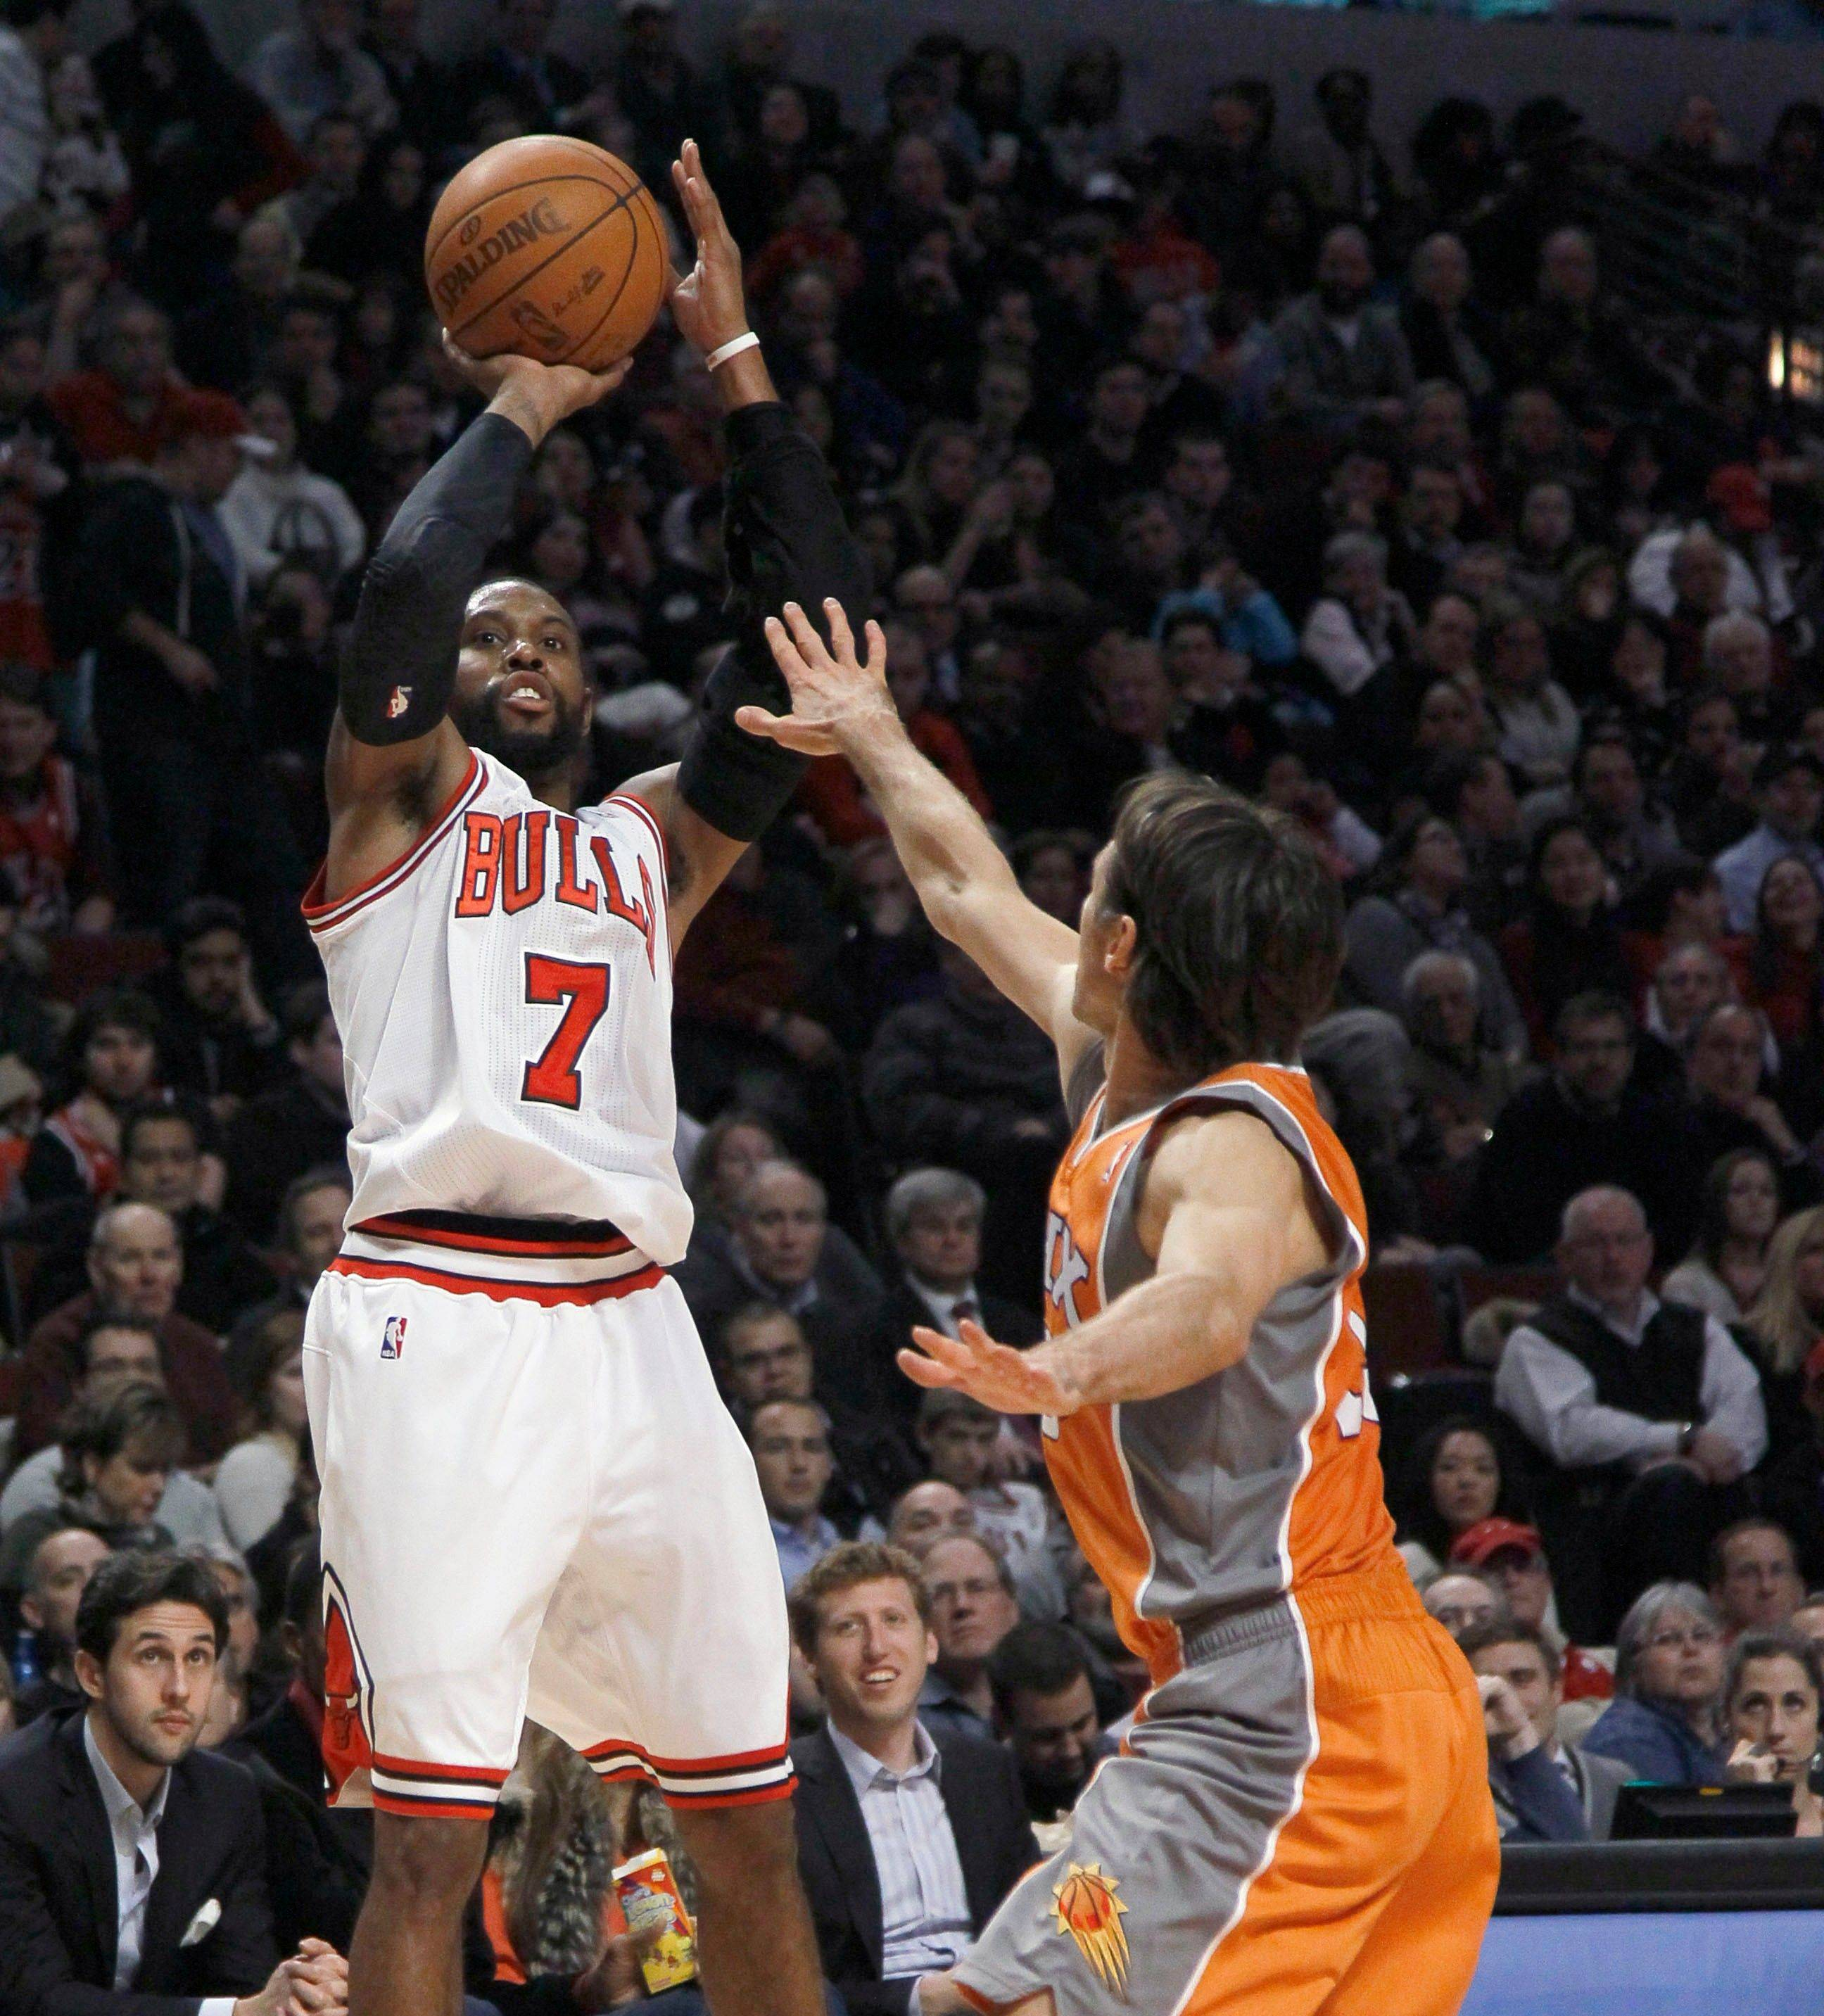 The Bulls' C.J. Watson fires in 2 of his 23 points against the Suns on Tuesday at the United Center. The Bulls won 118-97 and are on the road tonight at Cleveland.